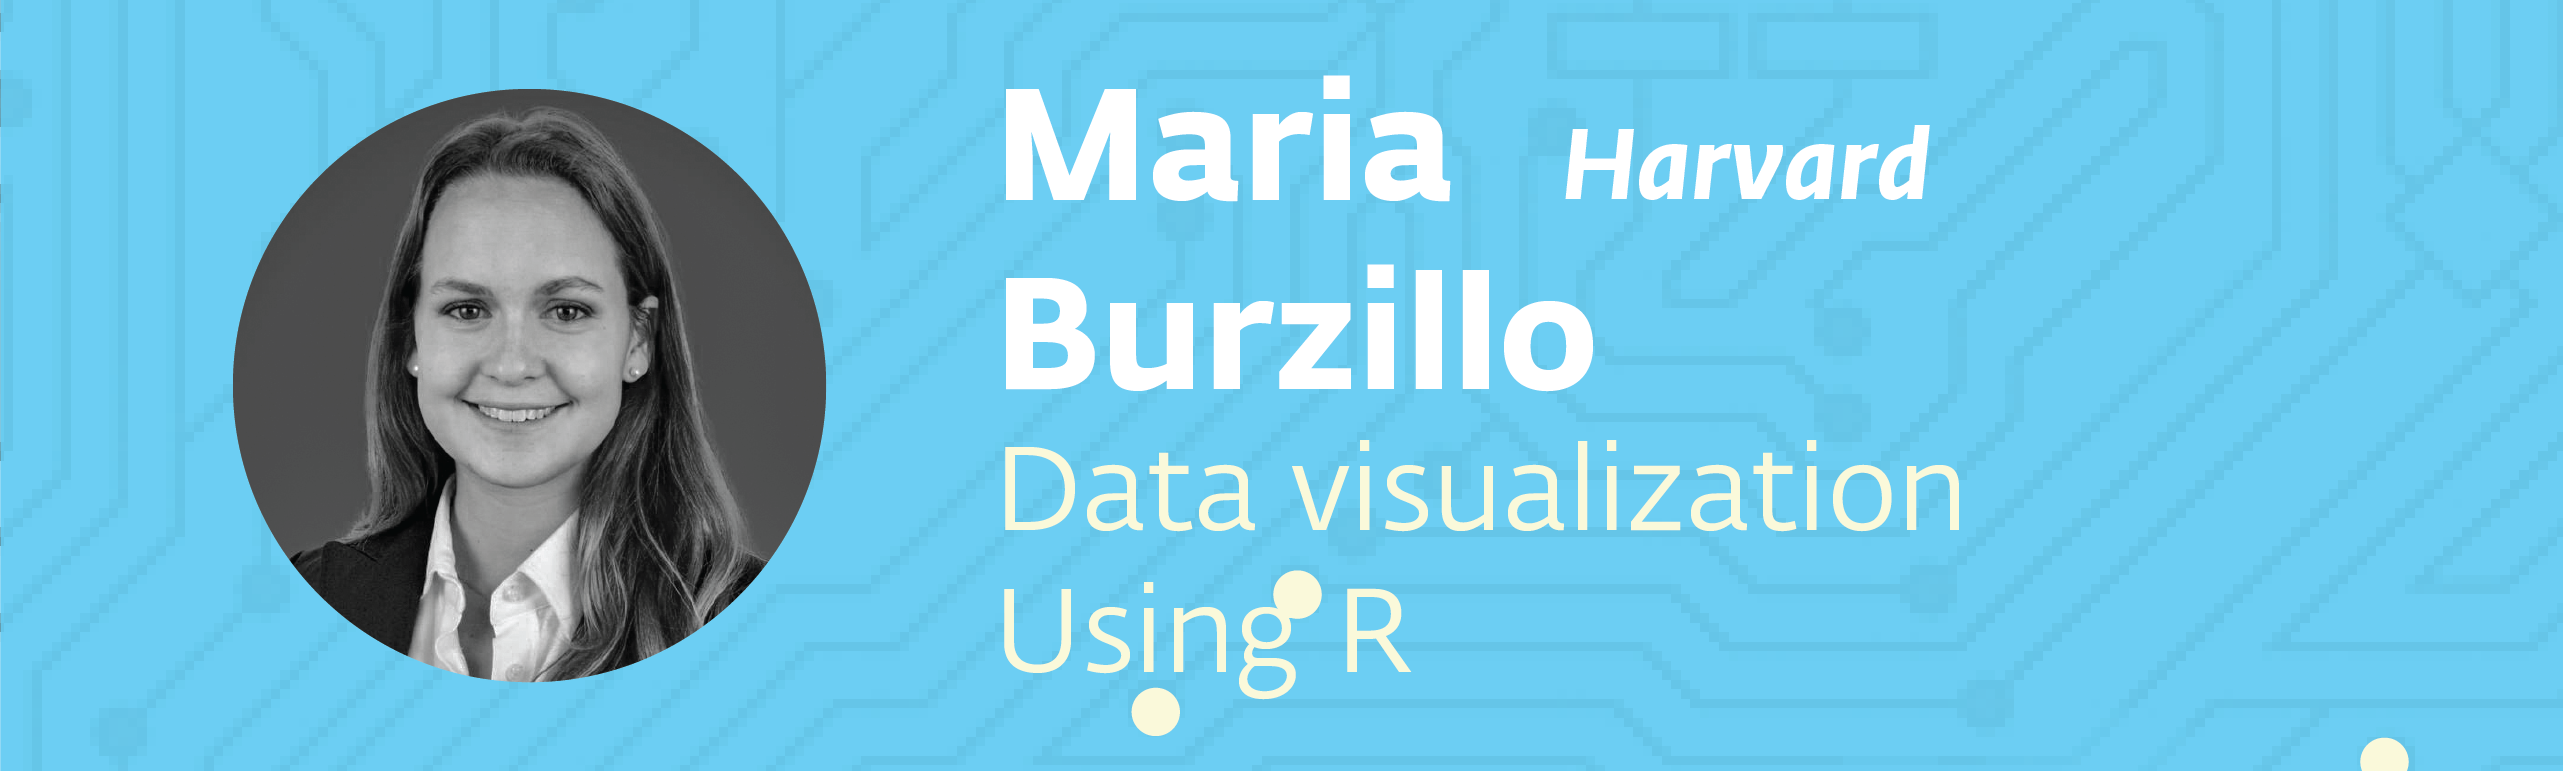 NewBanner for Page 17 - Data visualization using R